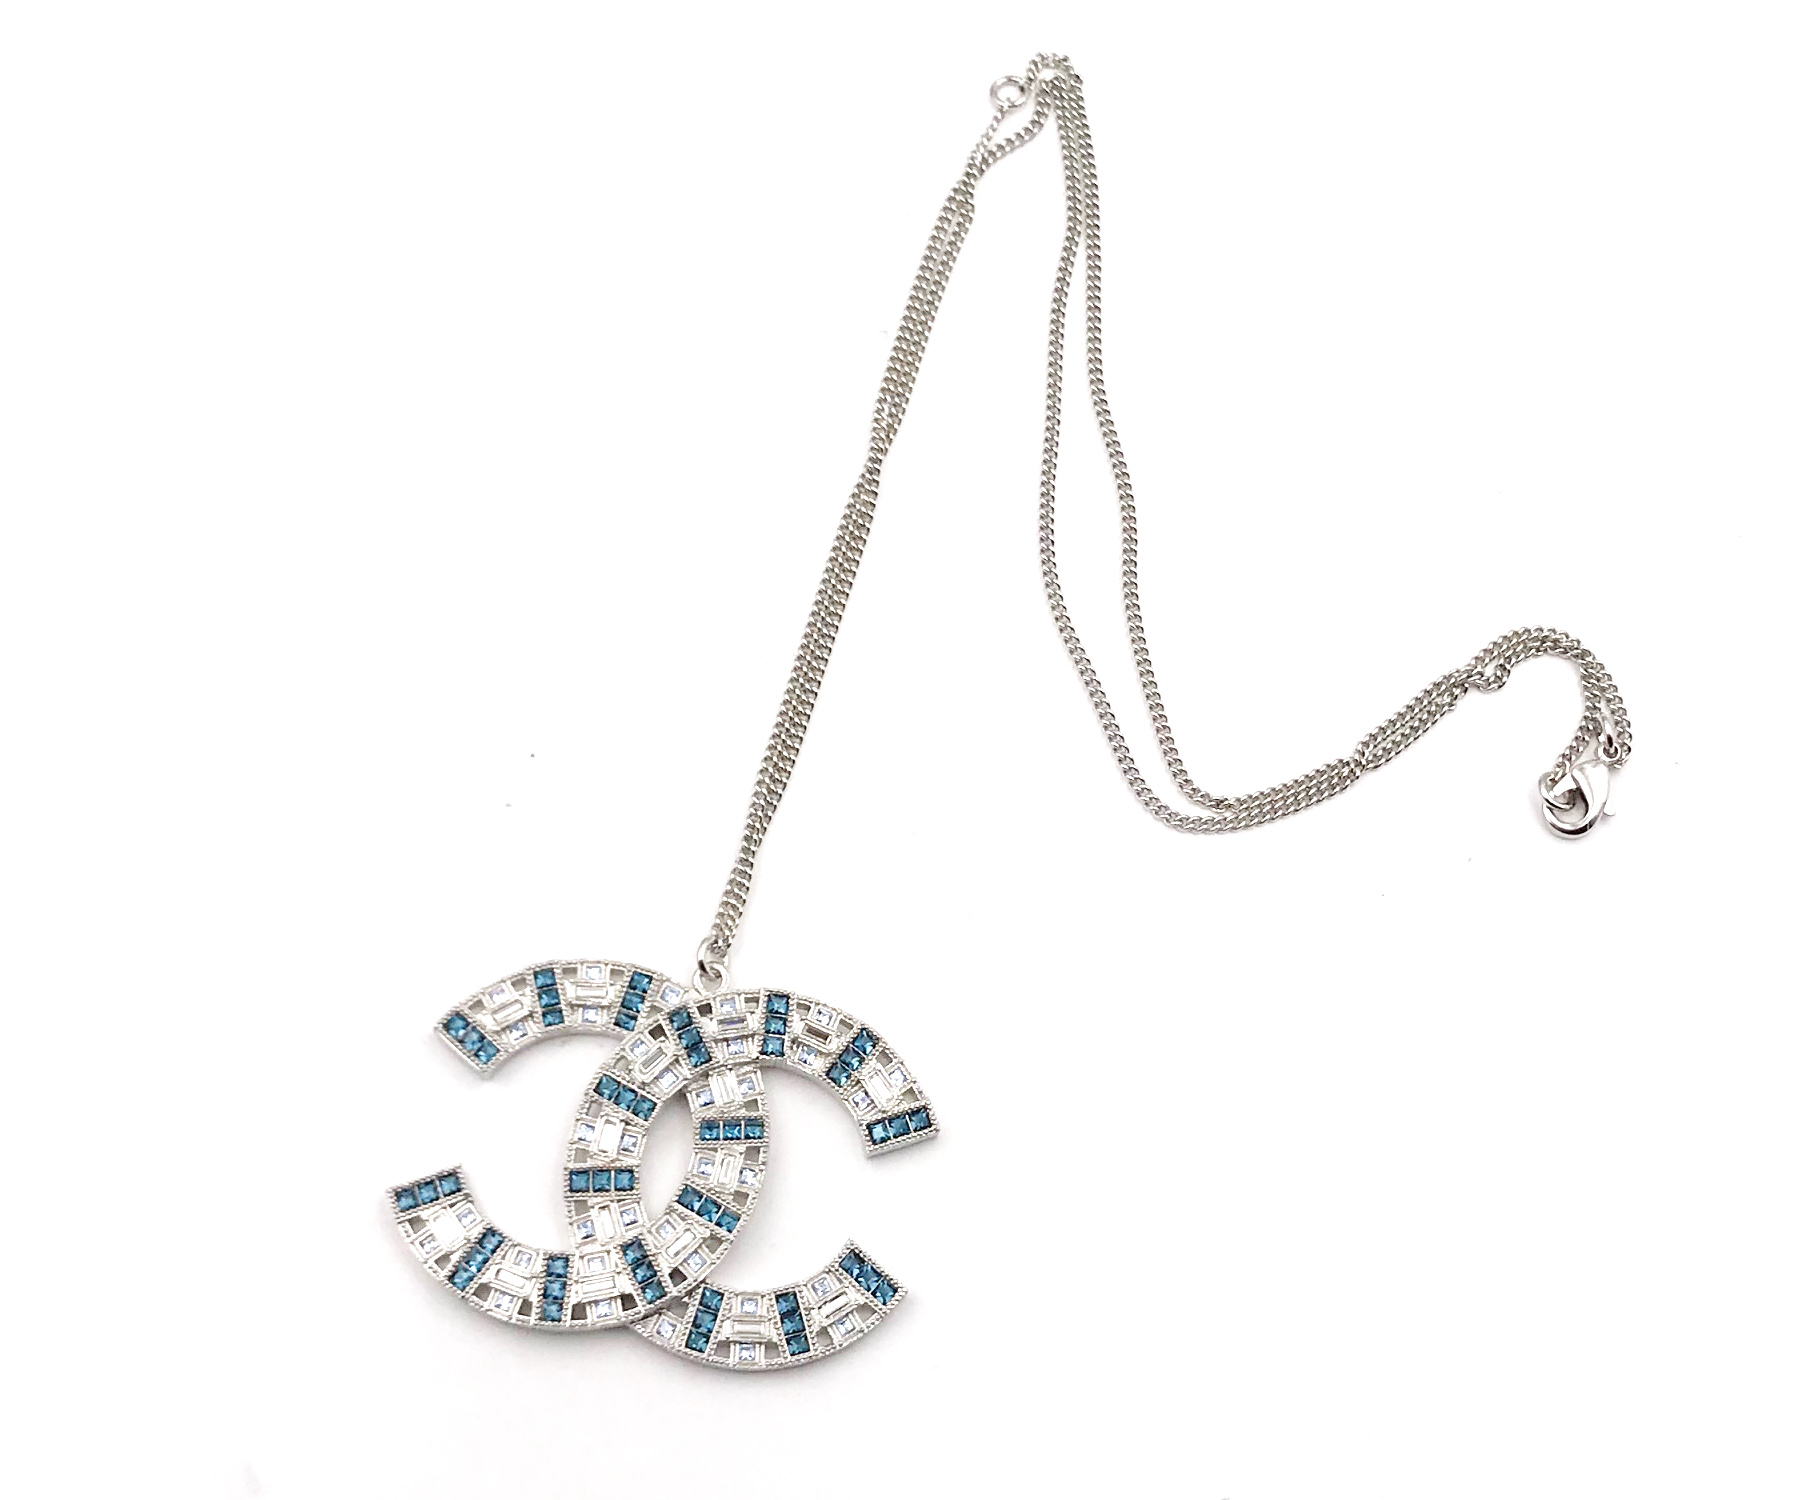 Chanel Silver Cc Light Blue Crystal Large Pendant Necklace